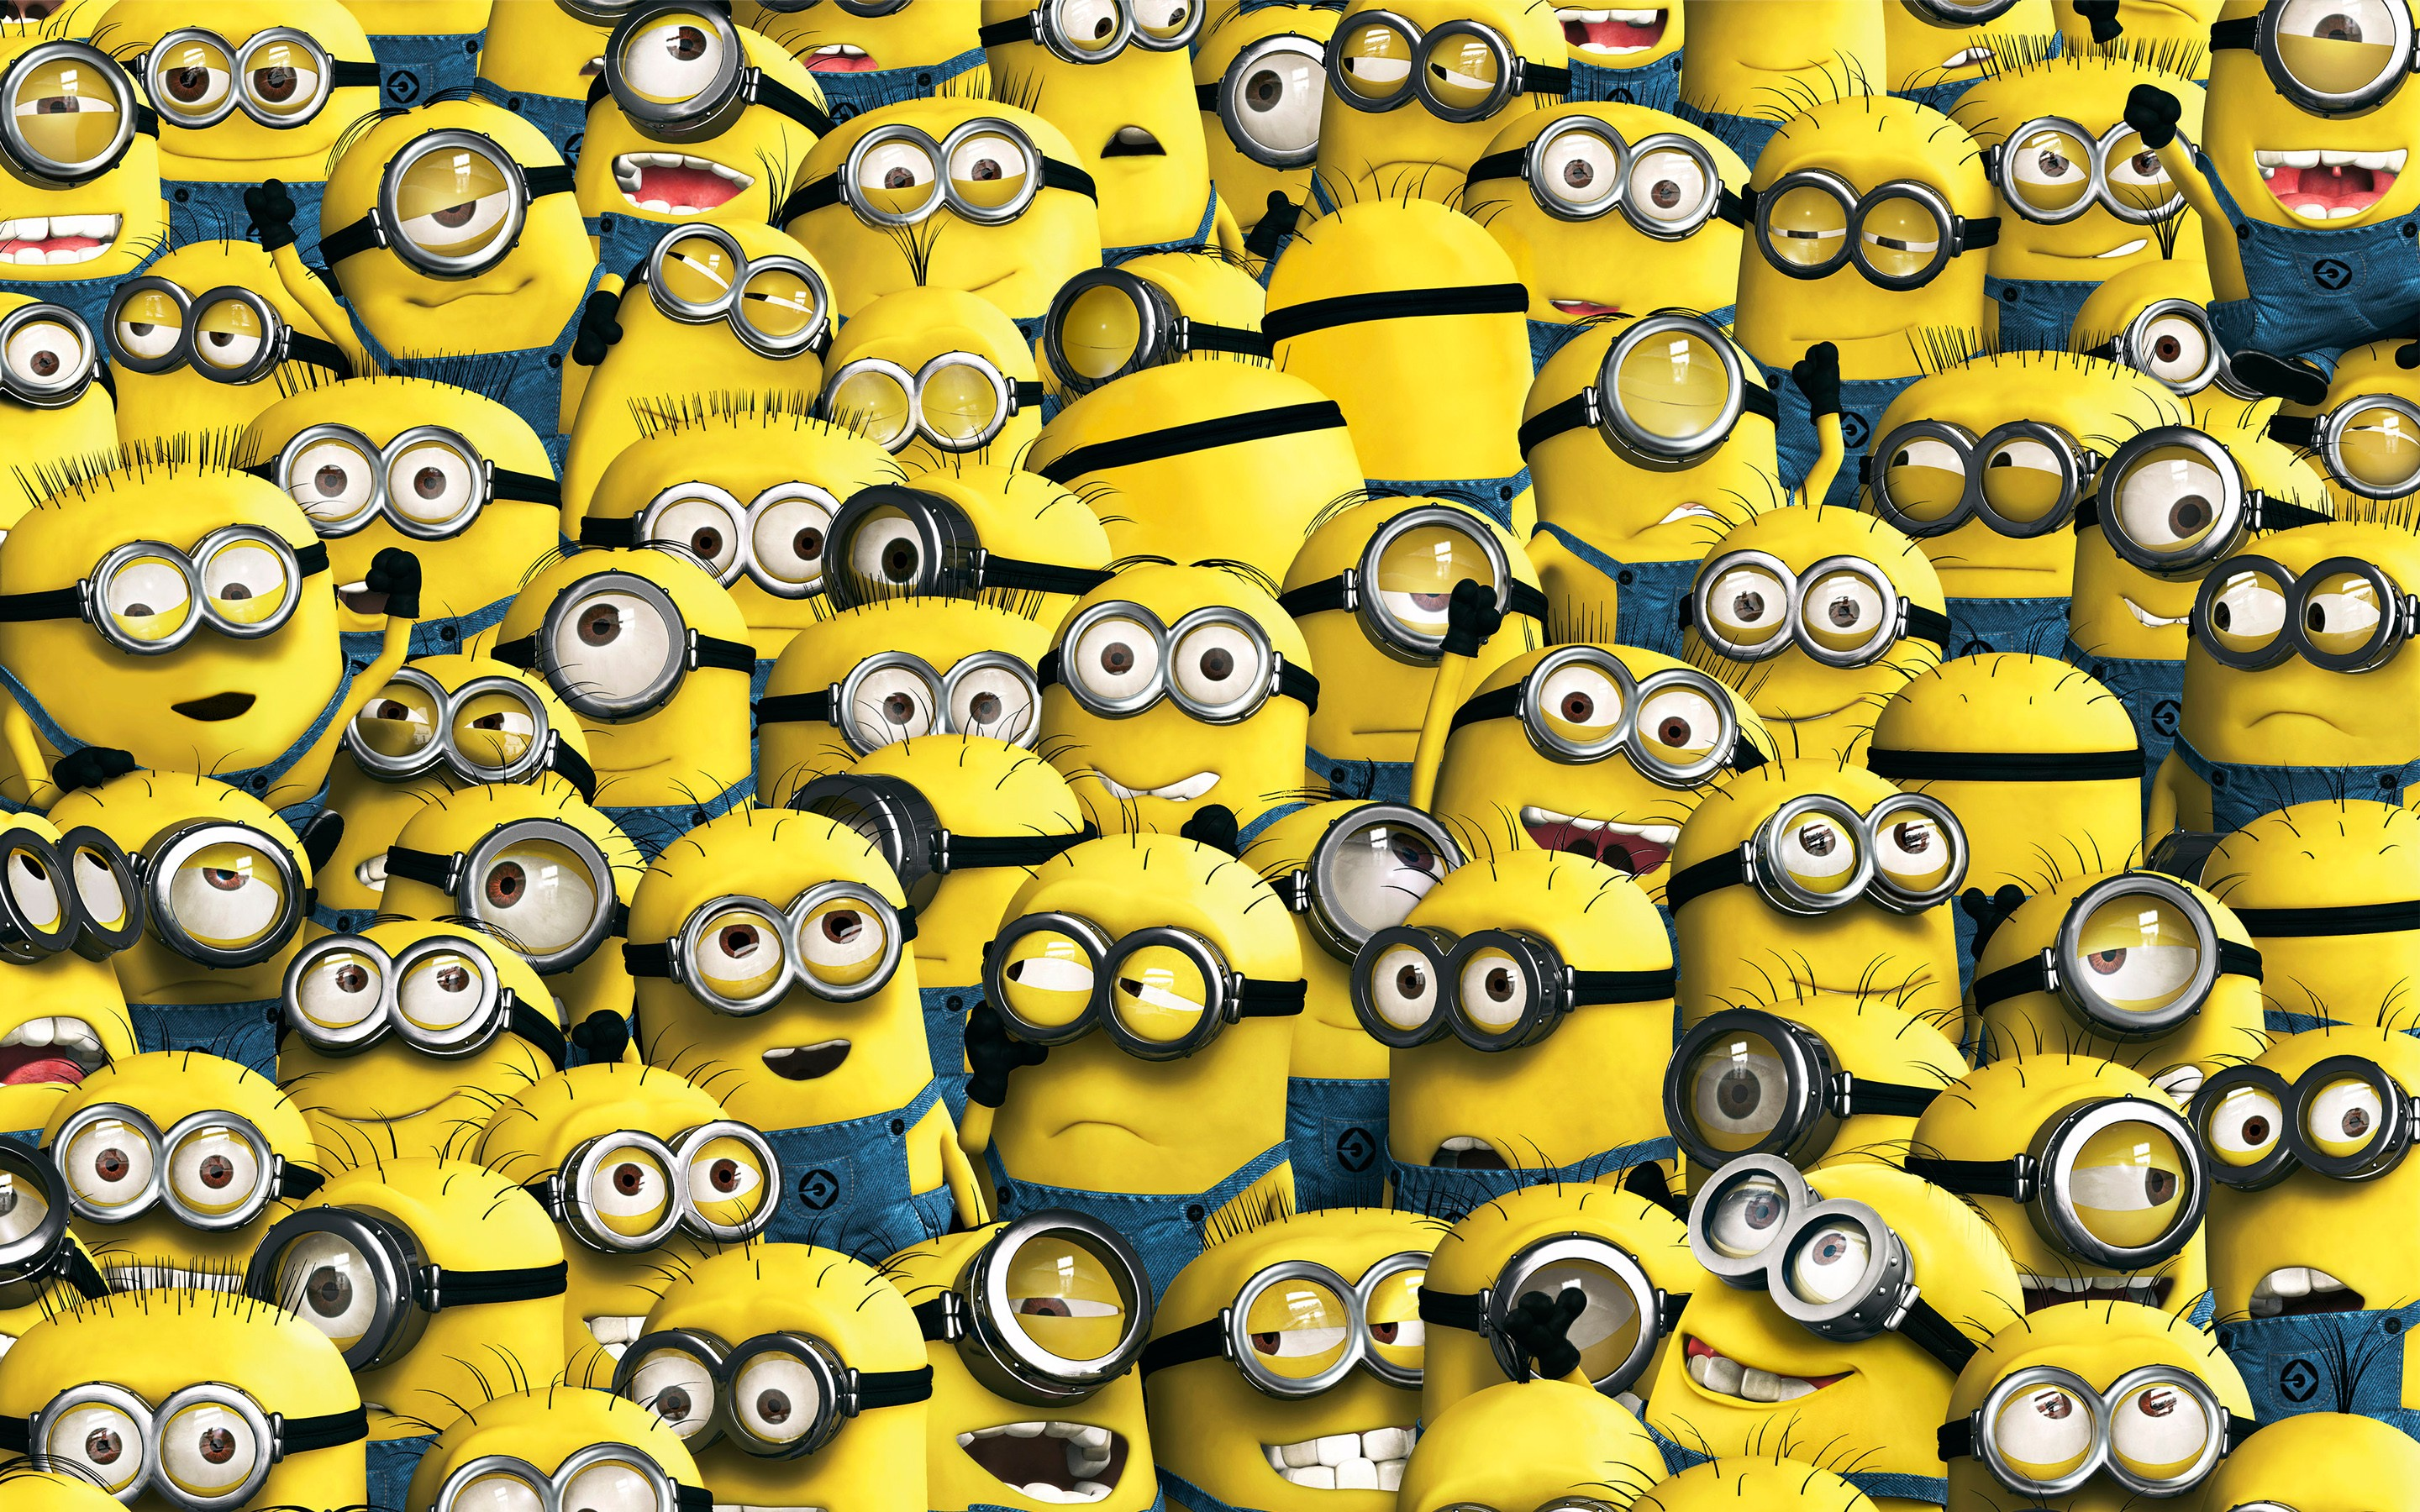 2048x2048 minions 6 ipad air hd 4k wallpapers, images, backgrounds